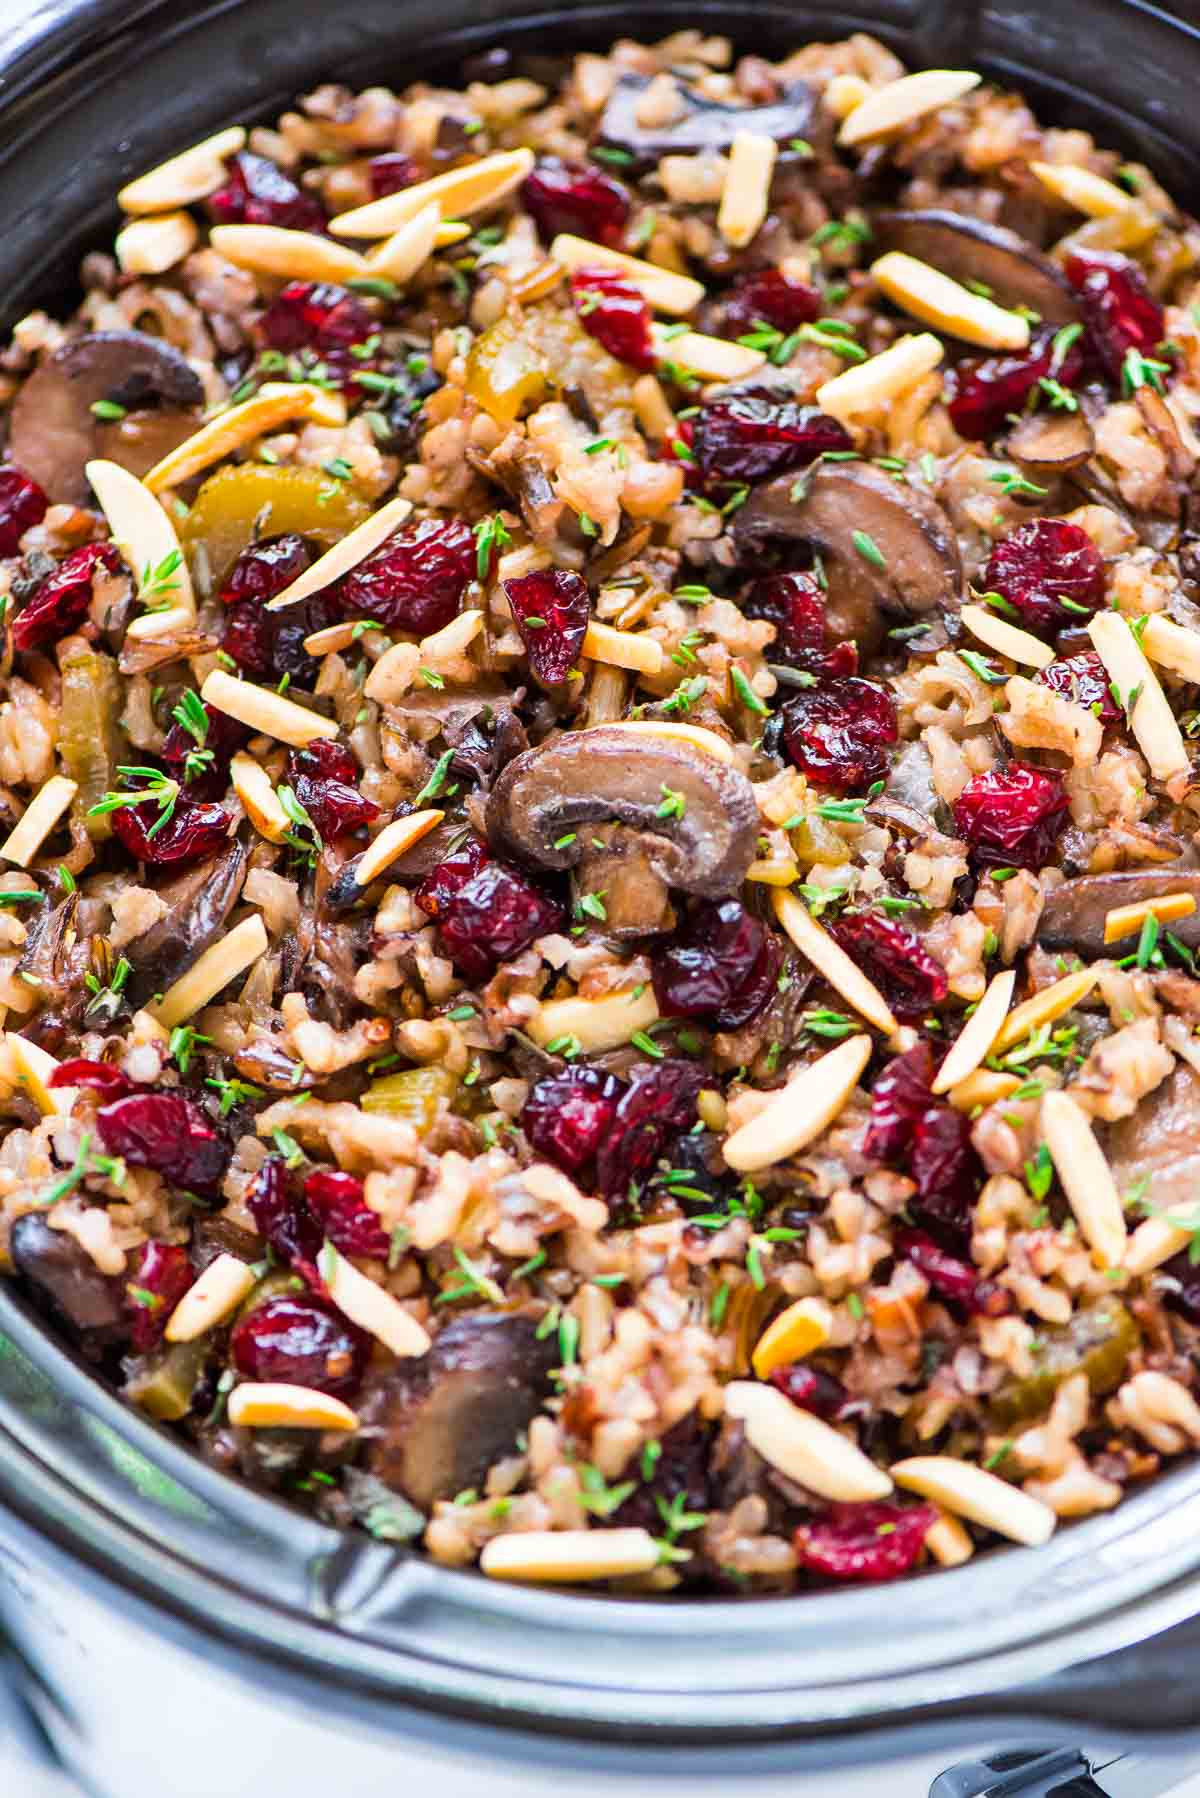 Thanksgiving Wild Rice Stuffing  Crock Pot Stuffing with Wild Rice Cranberries and Almonds